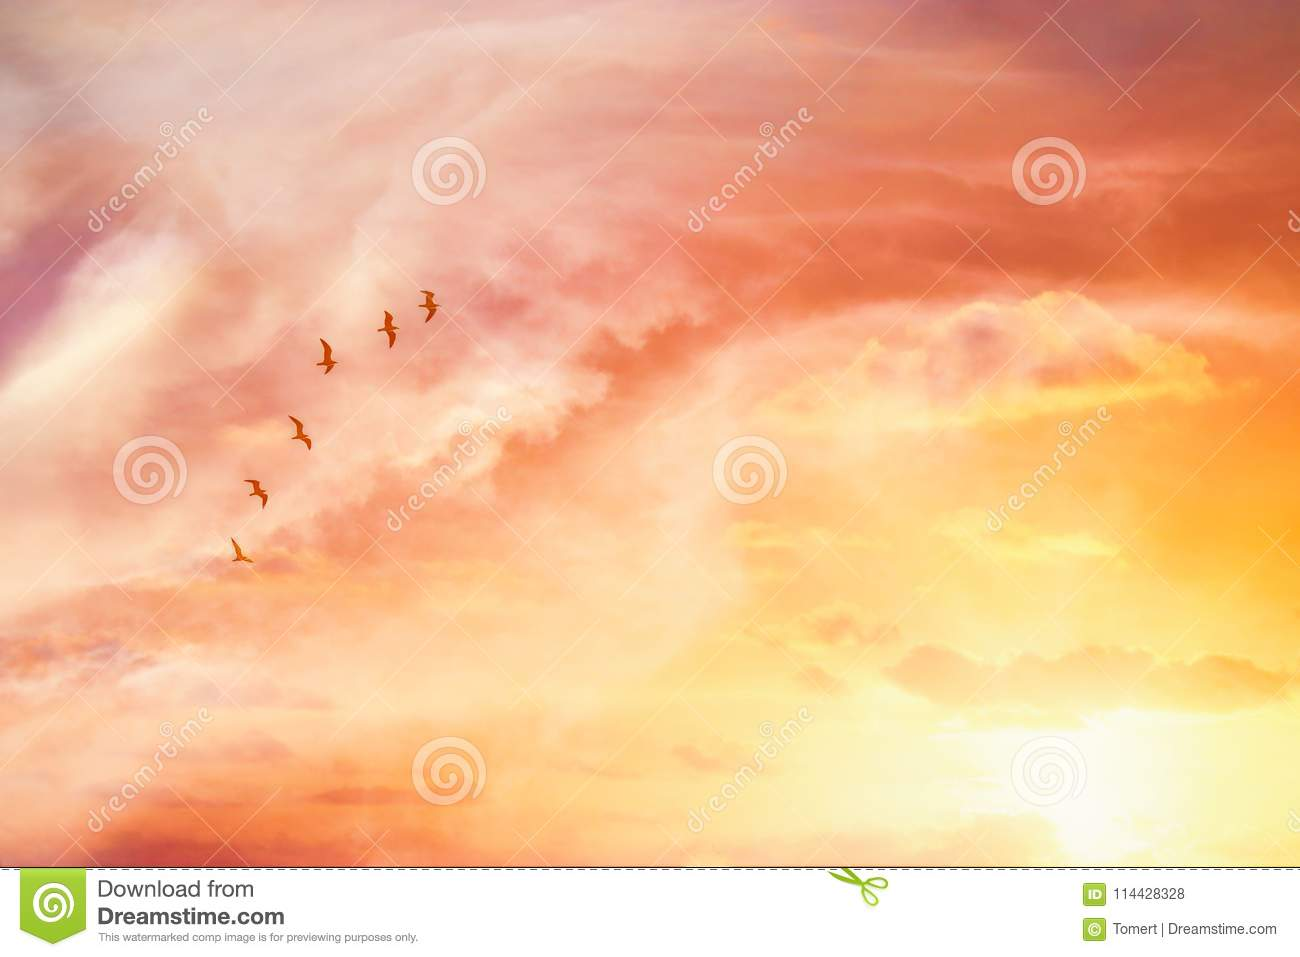 surreal enigmatic picture of flying birds in sunset or sunrise sky . minimalism and dream concept.